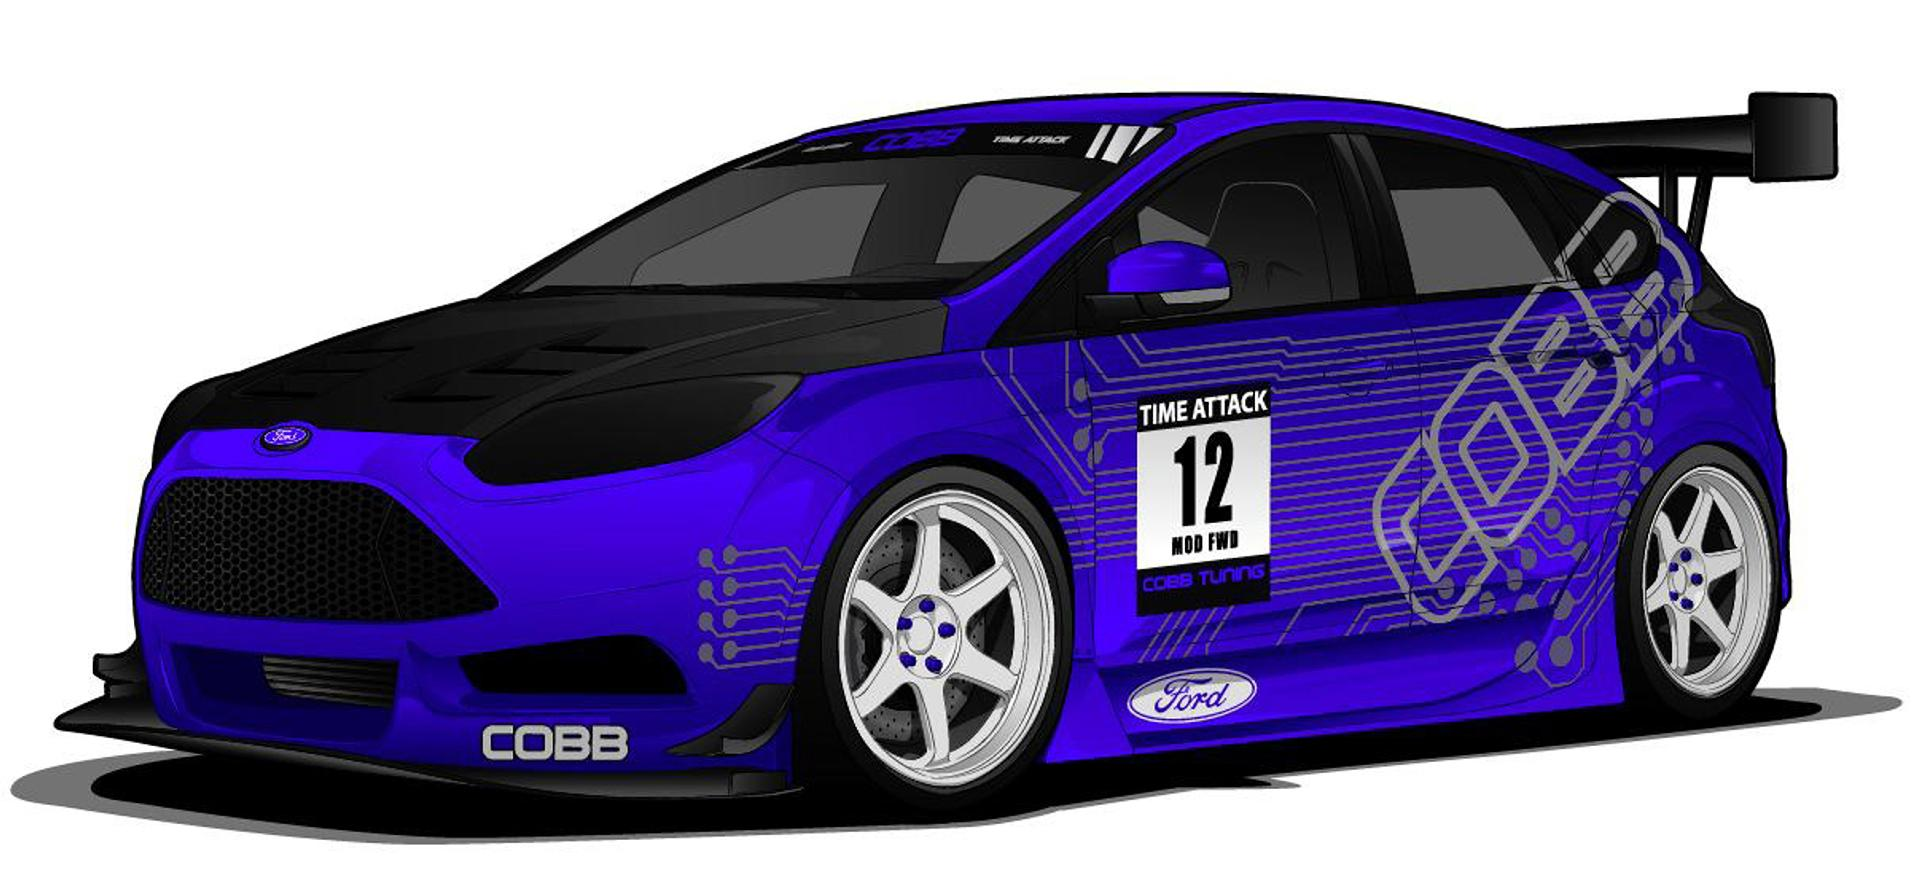 2012 Ford Focus By Cobb Tuning News And Information